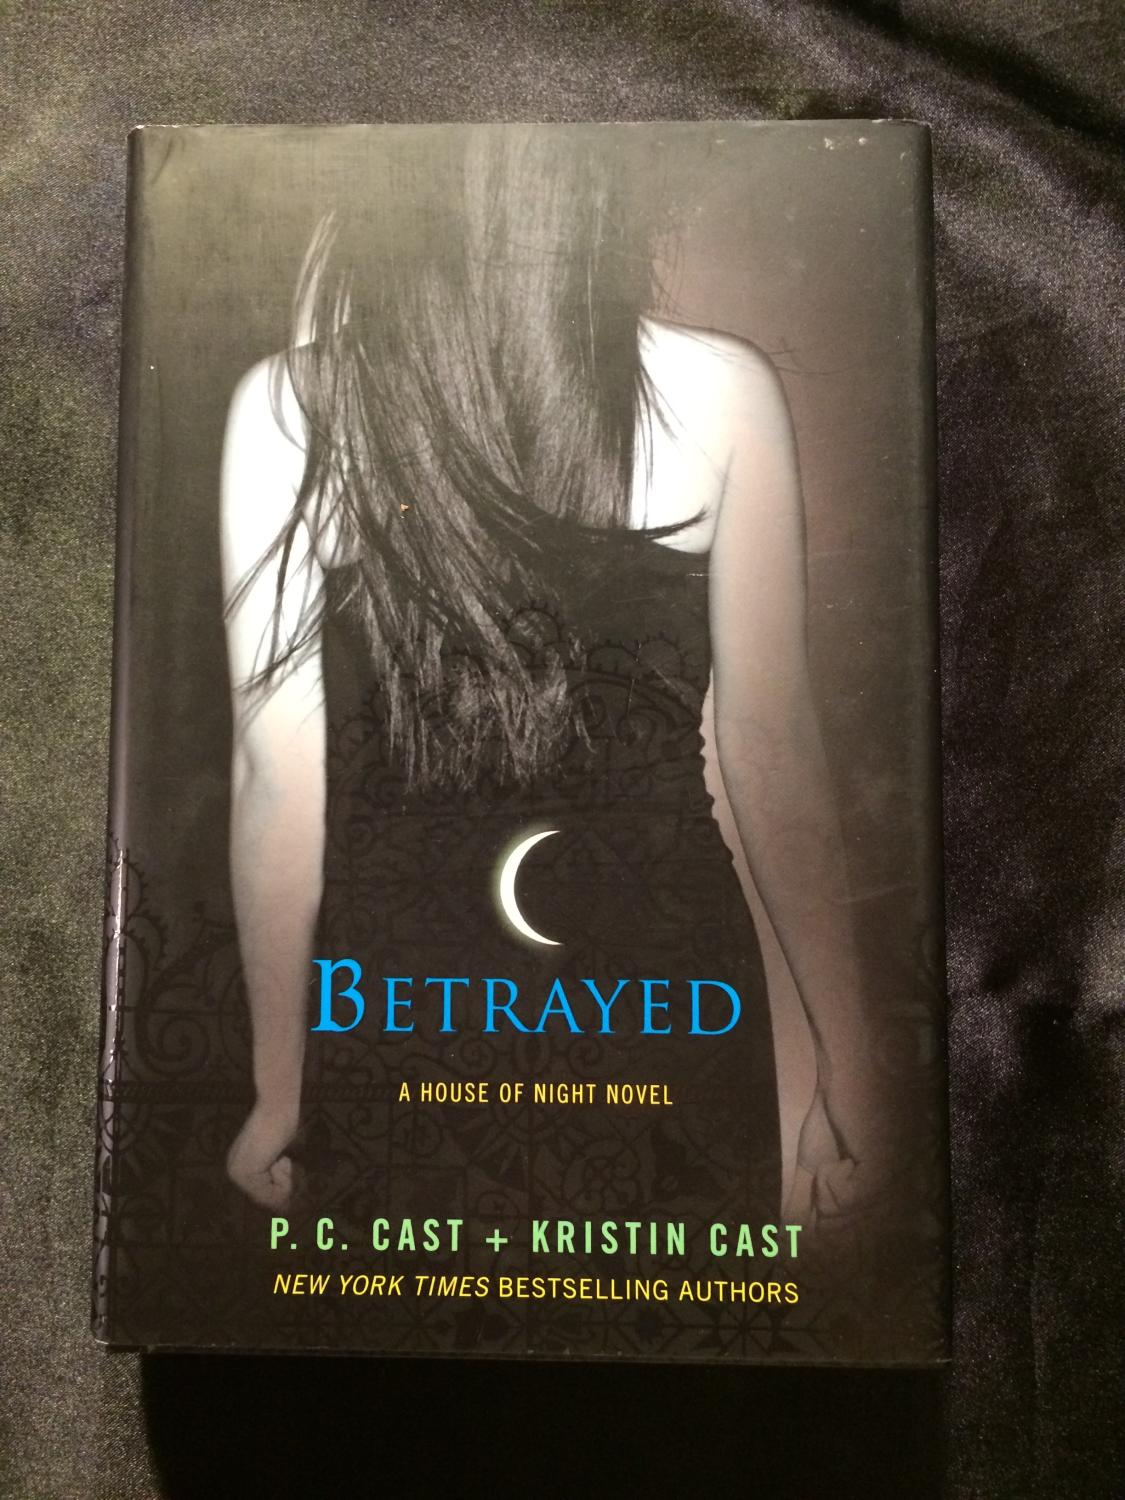 A House of Night Novel